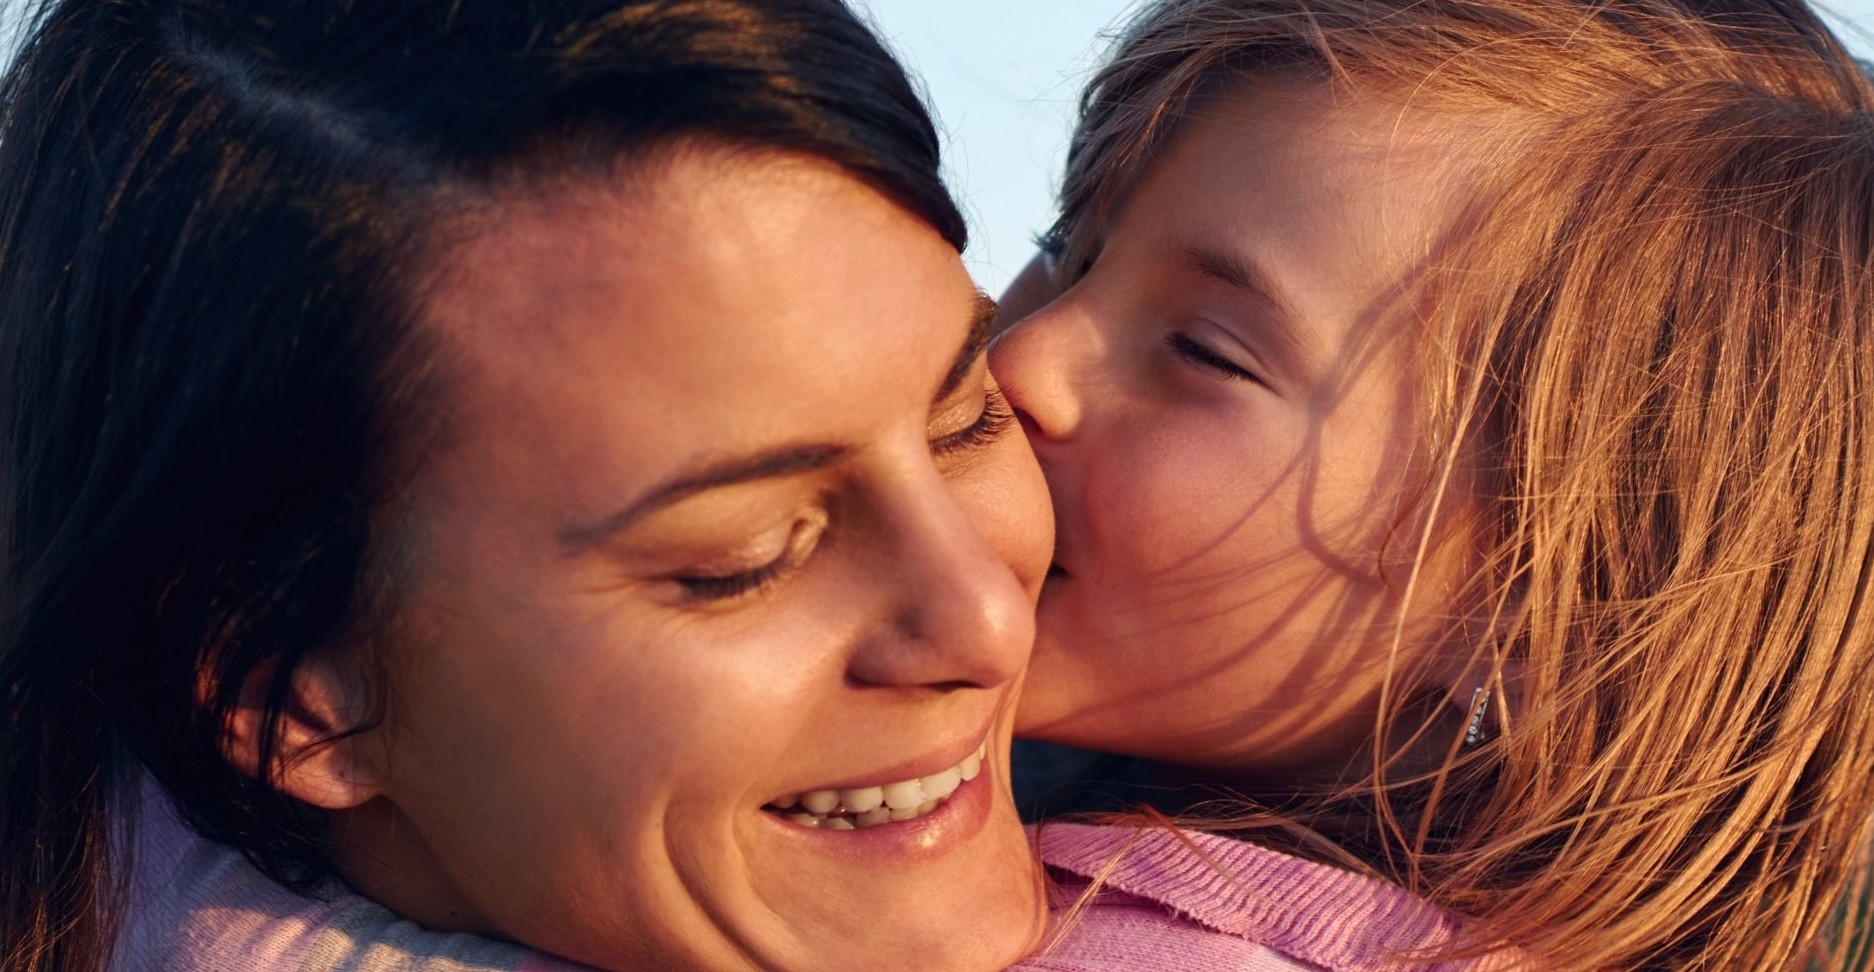 Daughter kissing mum on the cheek outside